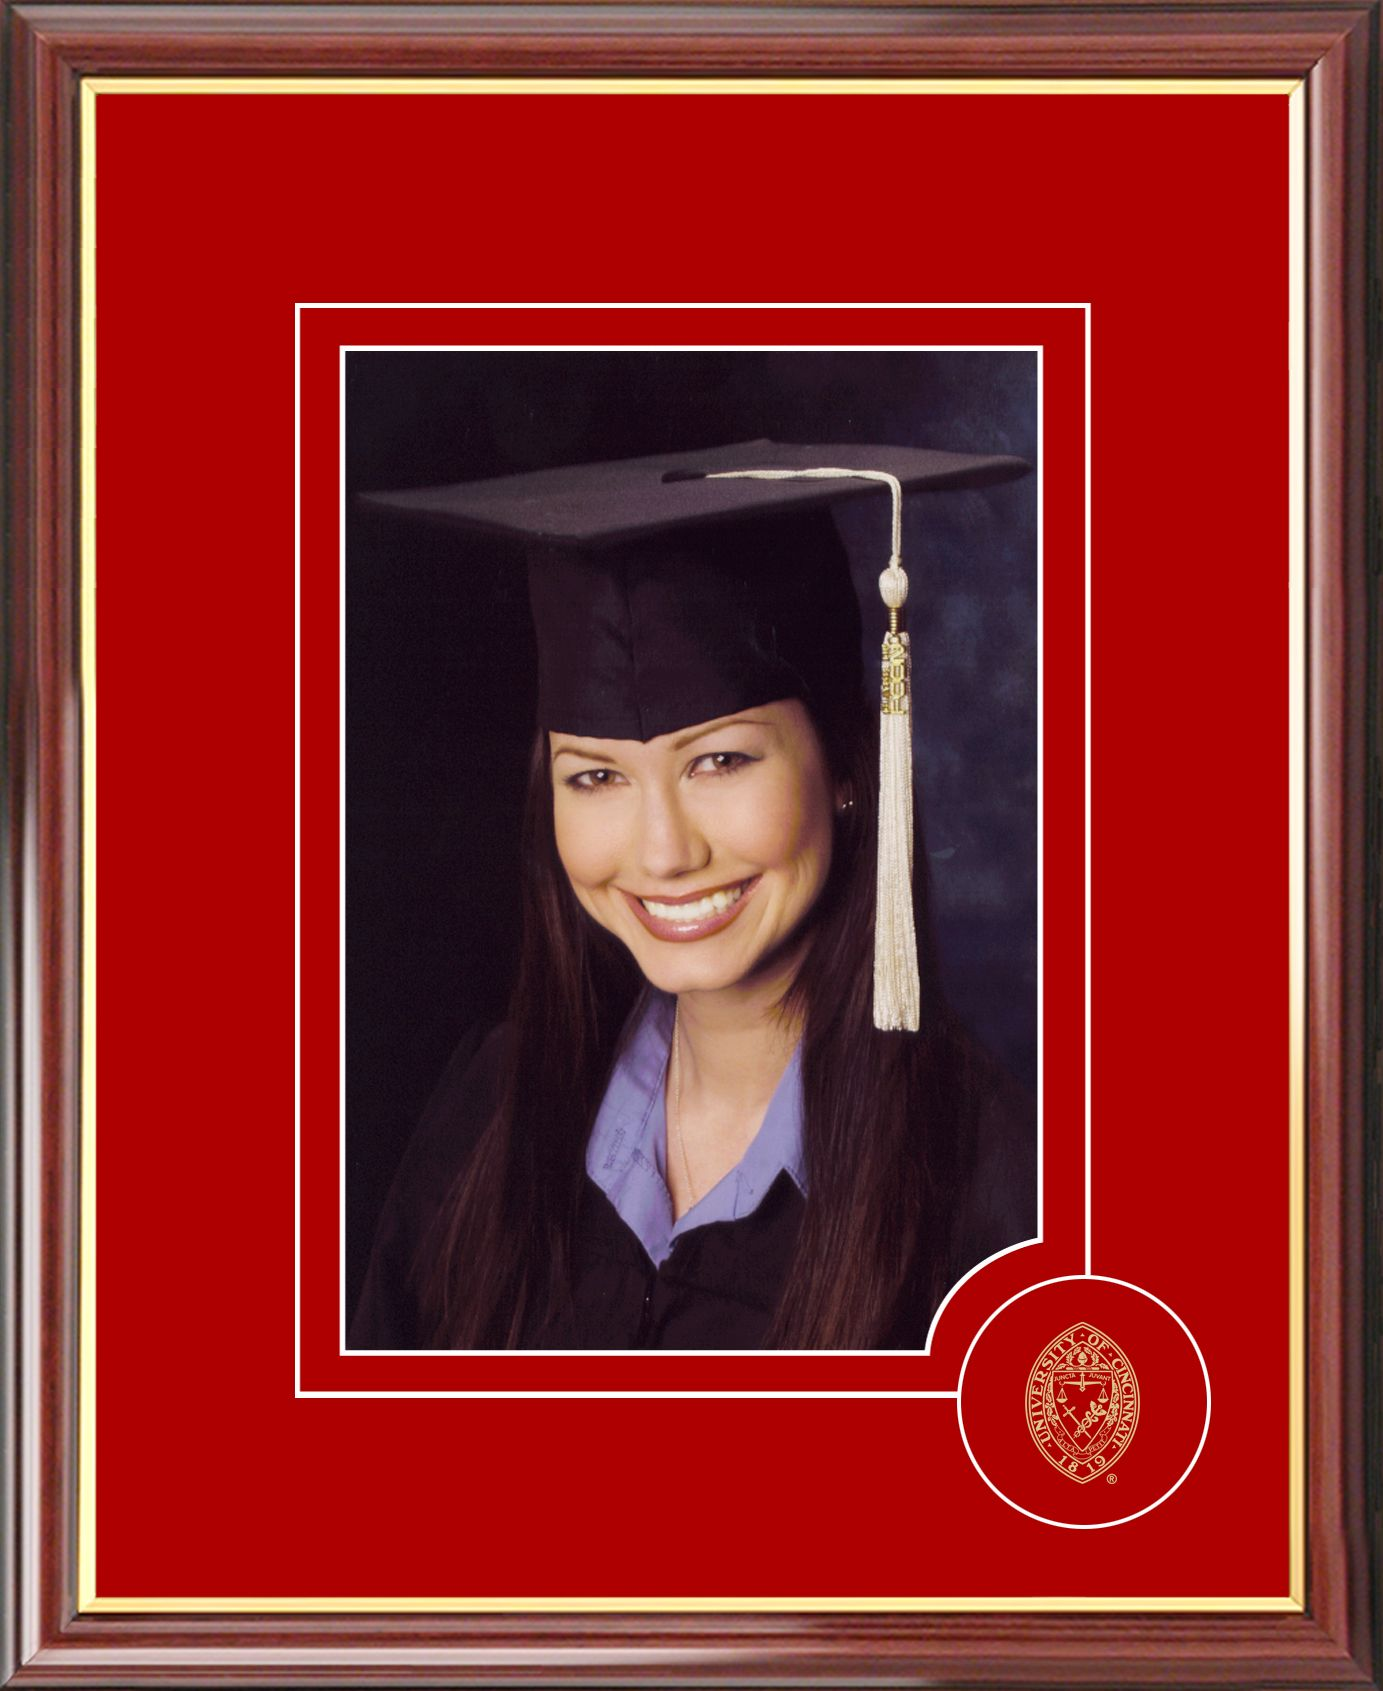 University of Cincinnati 5X7 Graduate Portrait Frame